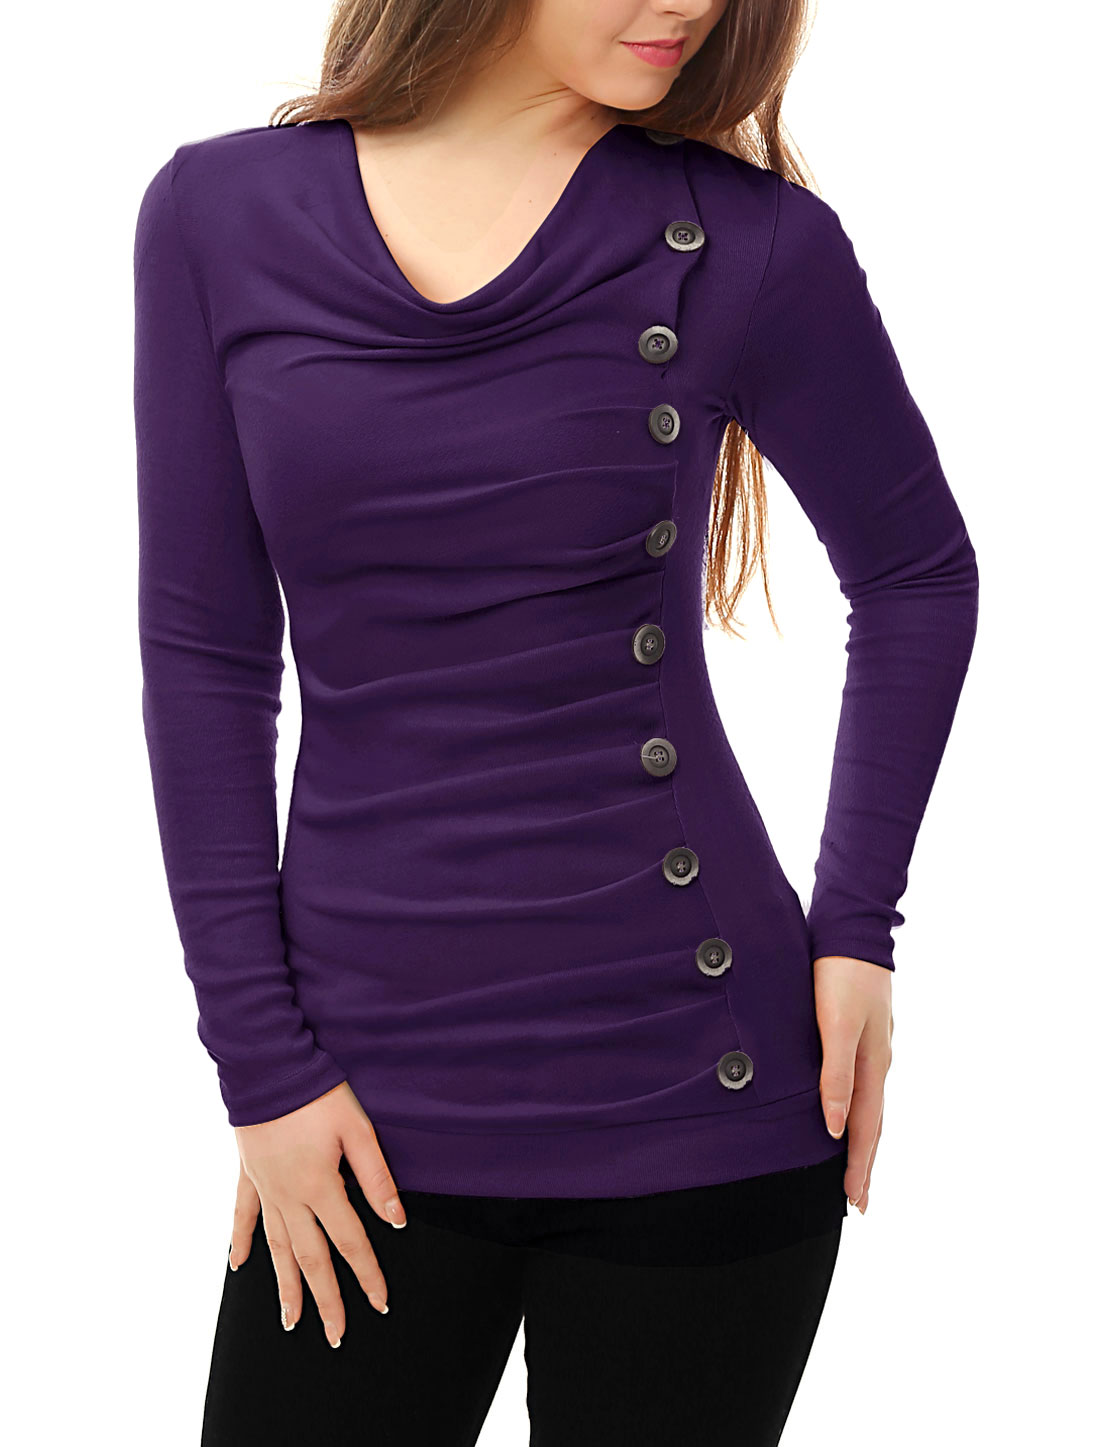 Women Cowl Neck Long Sleeves Buttons Decor Ruched Top Purple M